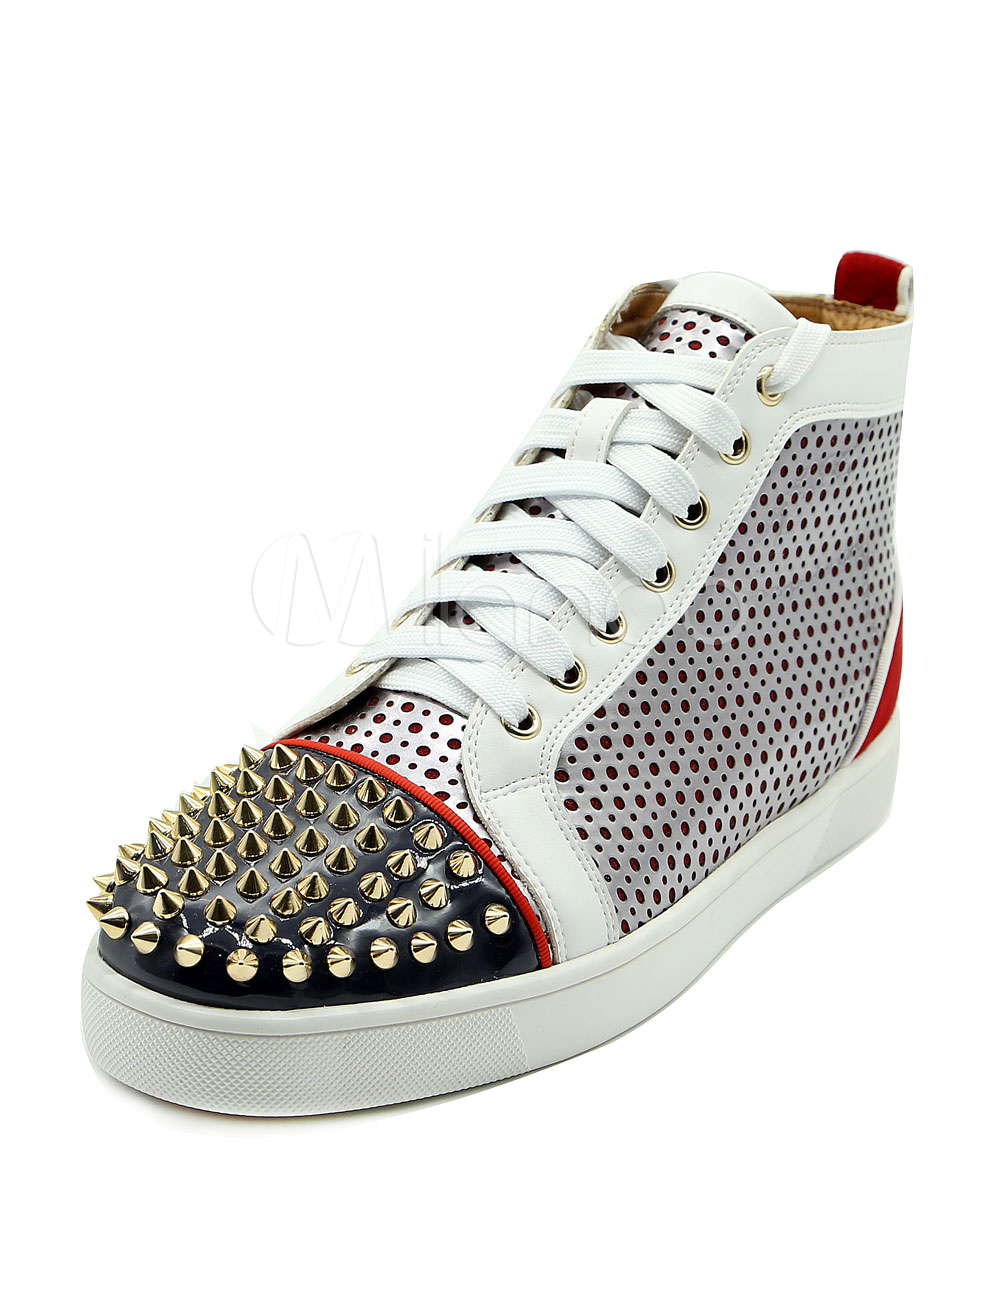 Buy White Men's Sneakers Round Toe Lace Up Flat PU Rivets Skater Shoes for $85.49 in Milanoo store